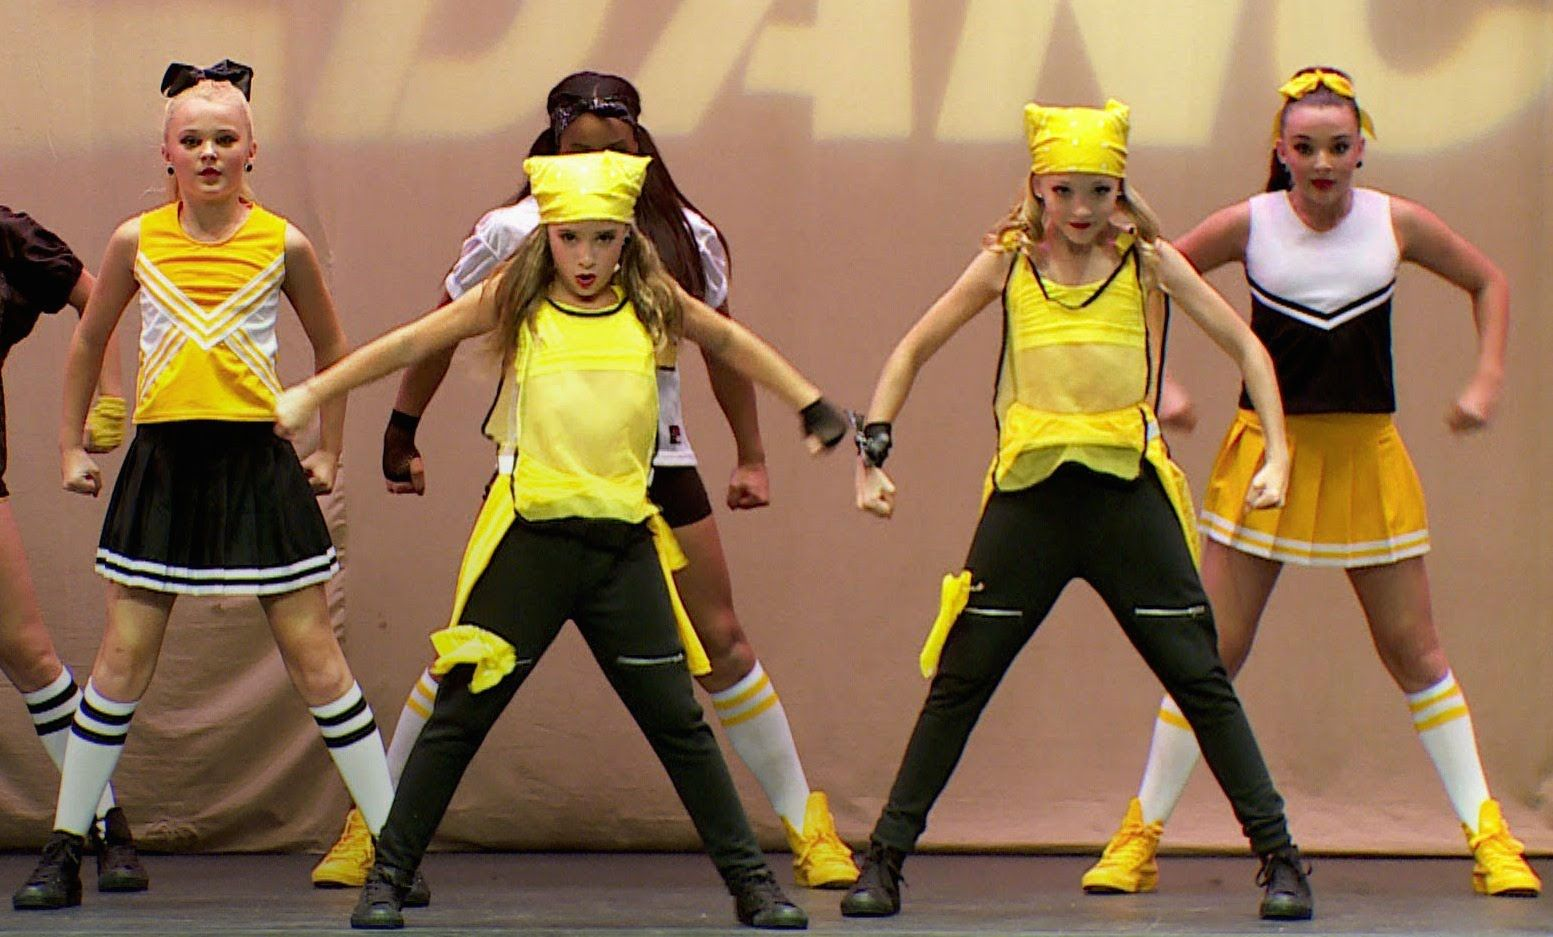 Little dancers from 'Dance Moms'